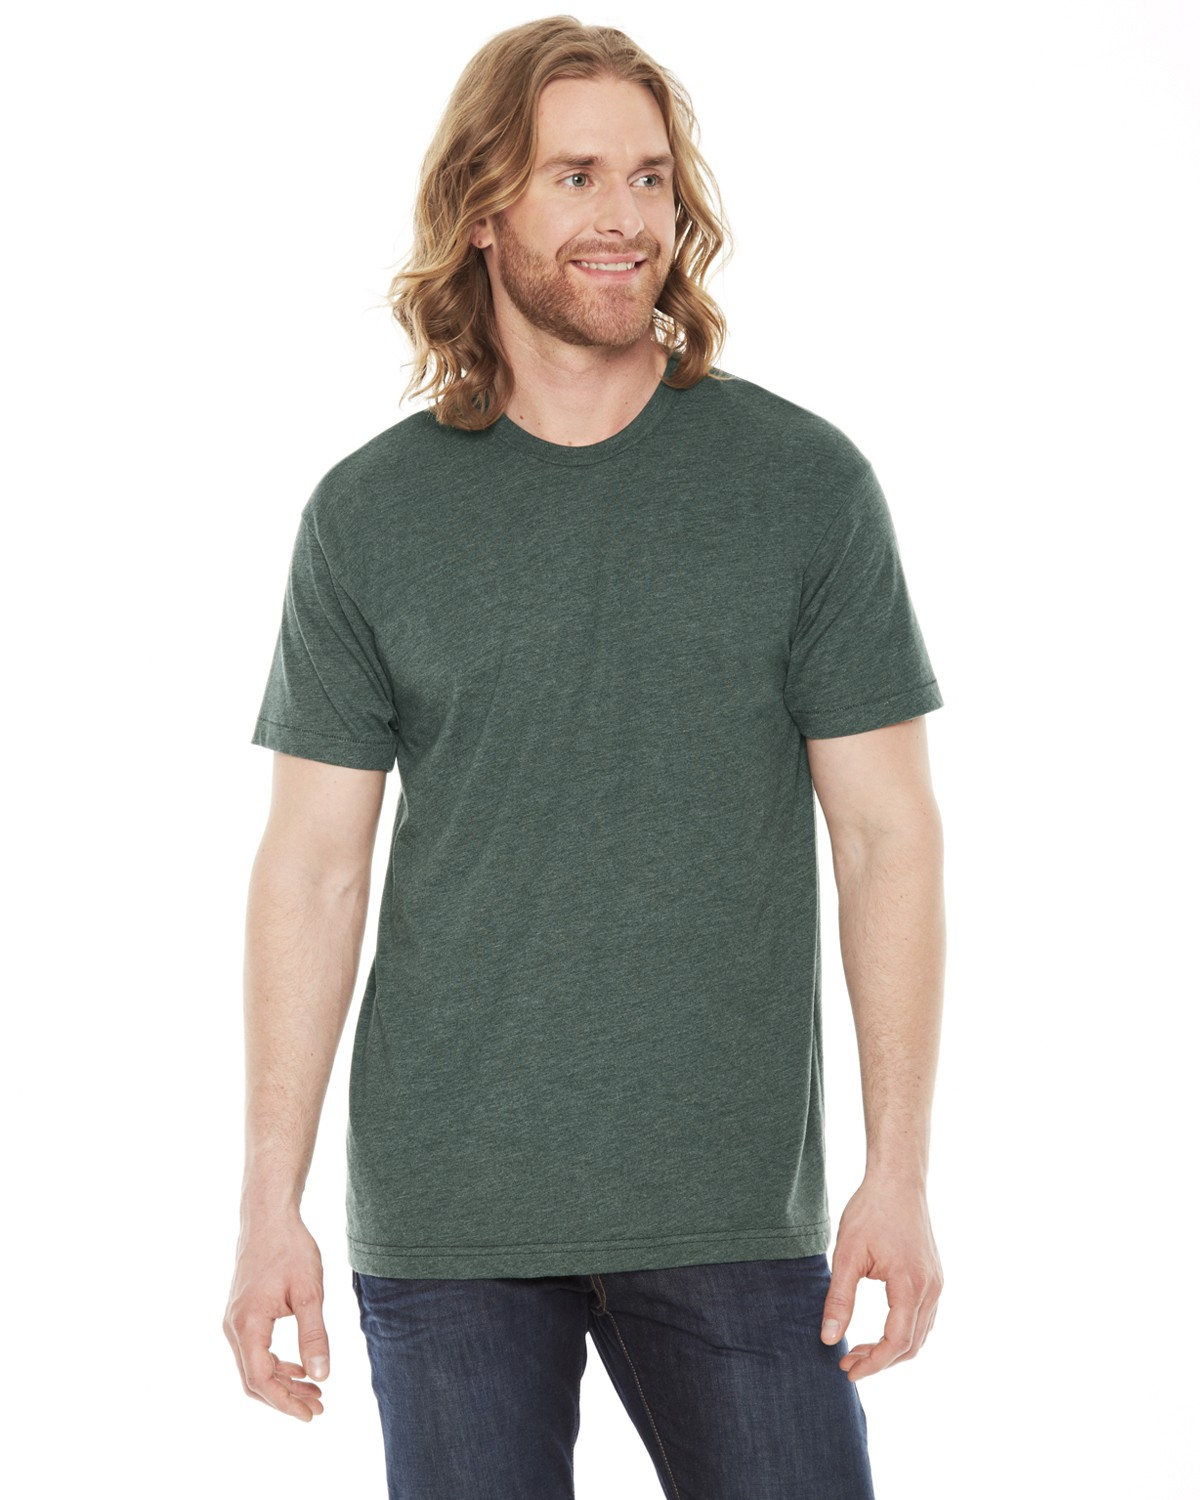 BB401 American Apparel HEATHER FOREST